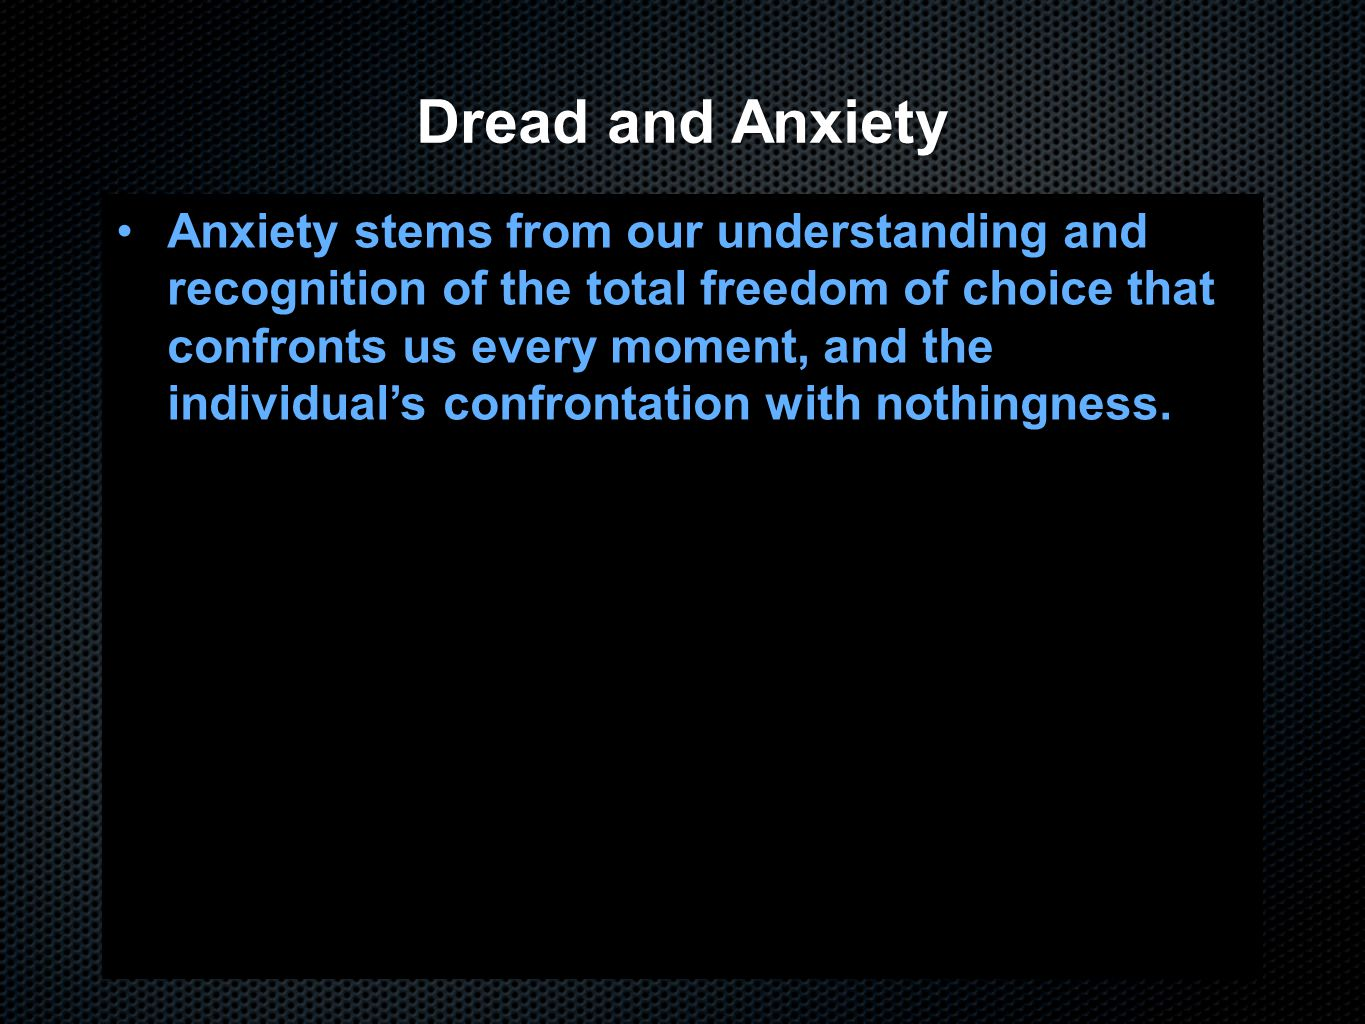 Dread and Anxiety